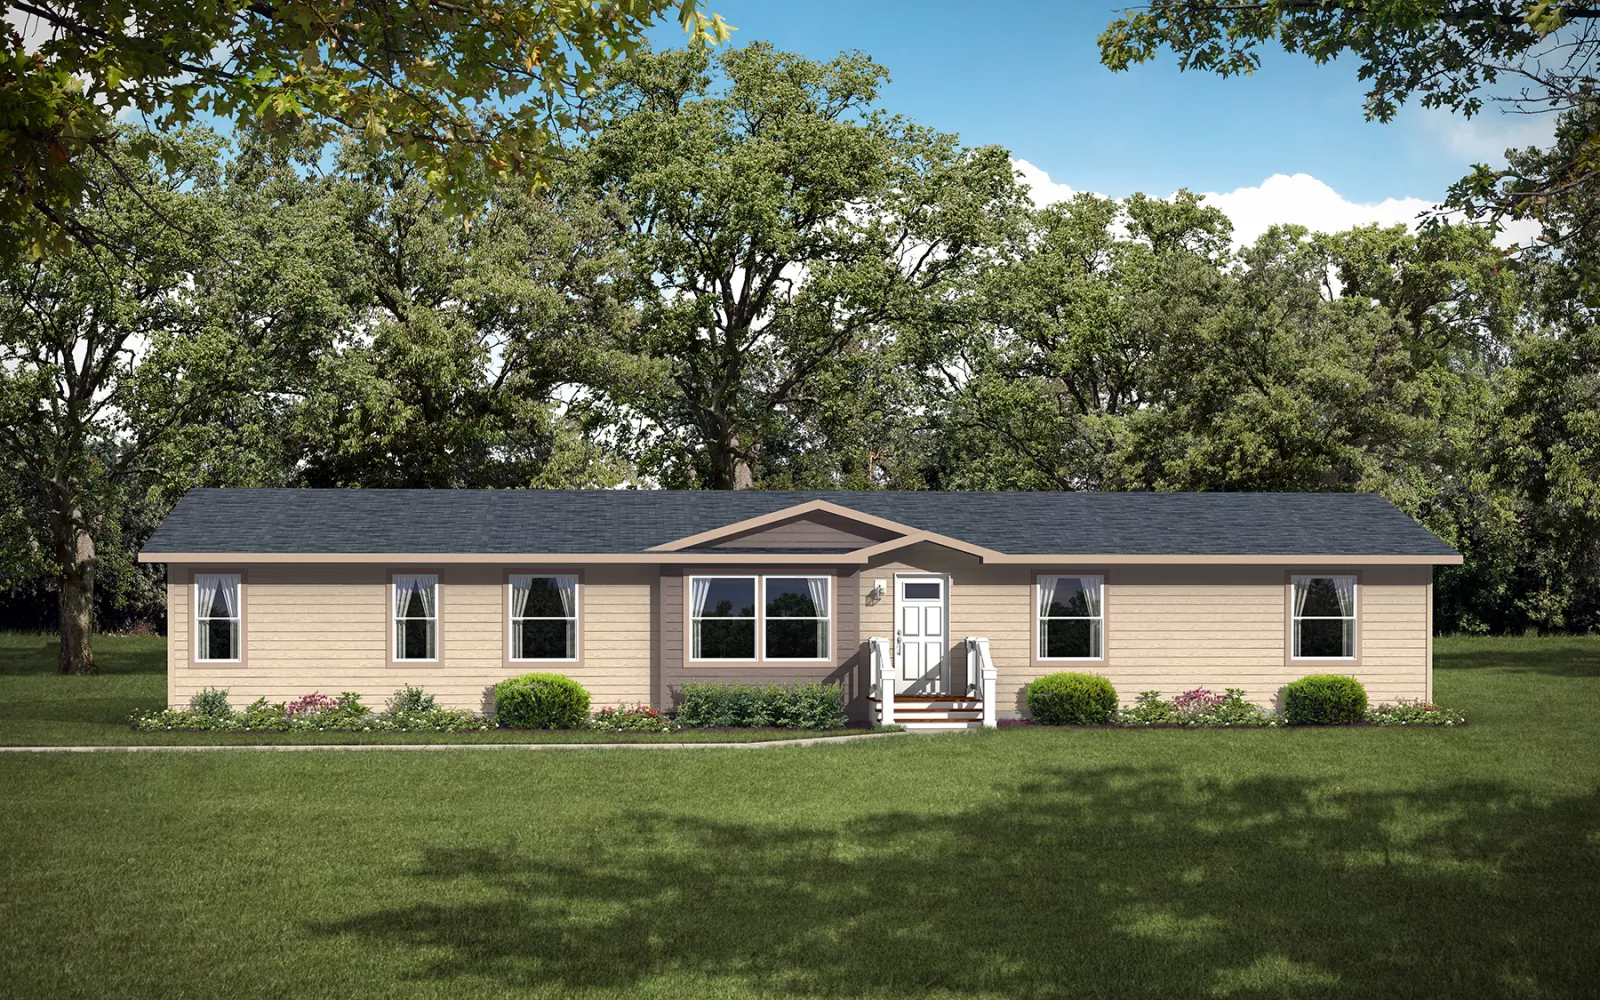 Image of the Champion Homes Avalanche 4714A exterior